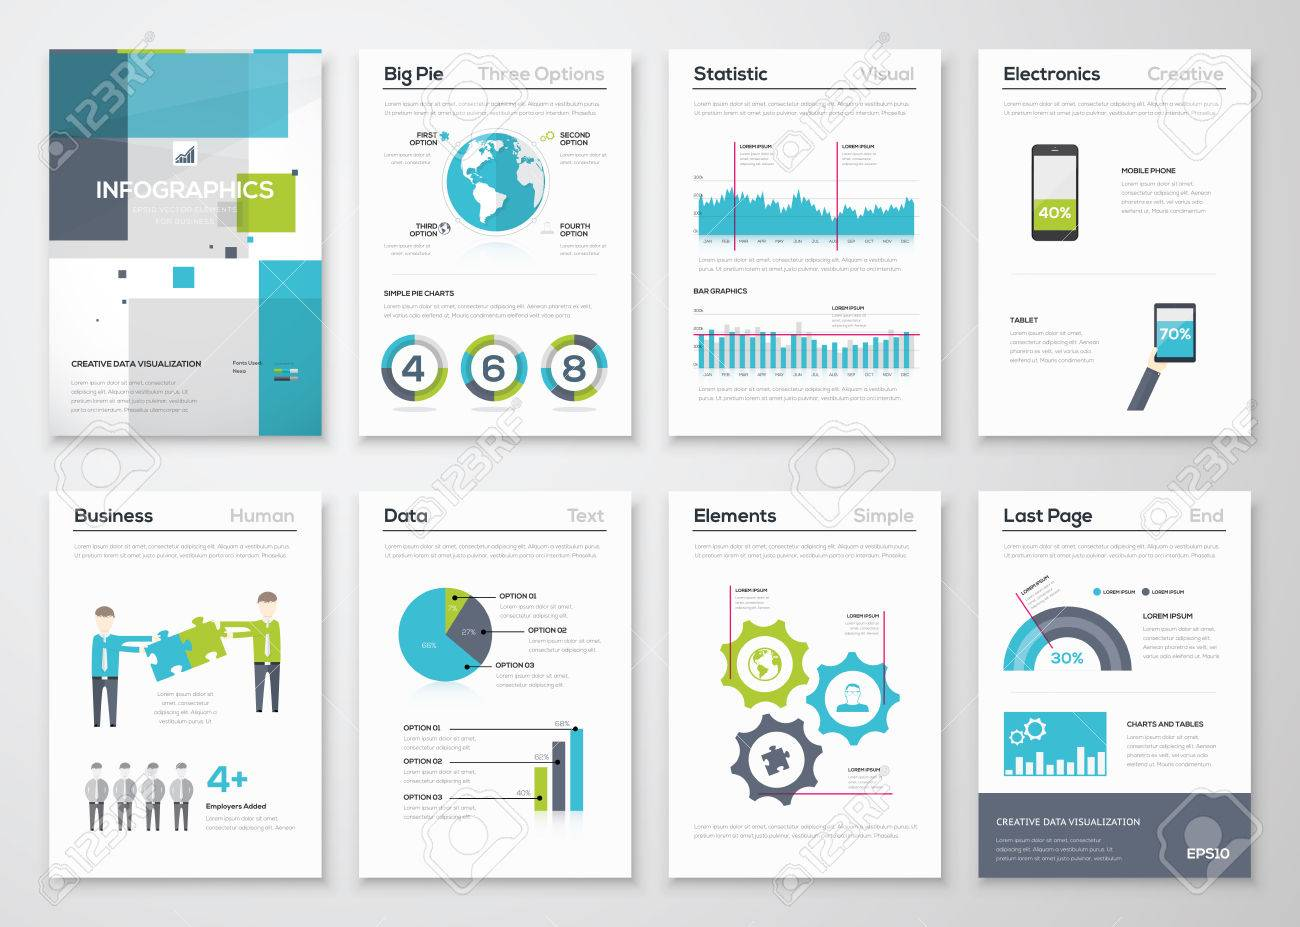 Set of infographic brochure elements and business graphics - 36927189